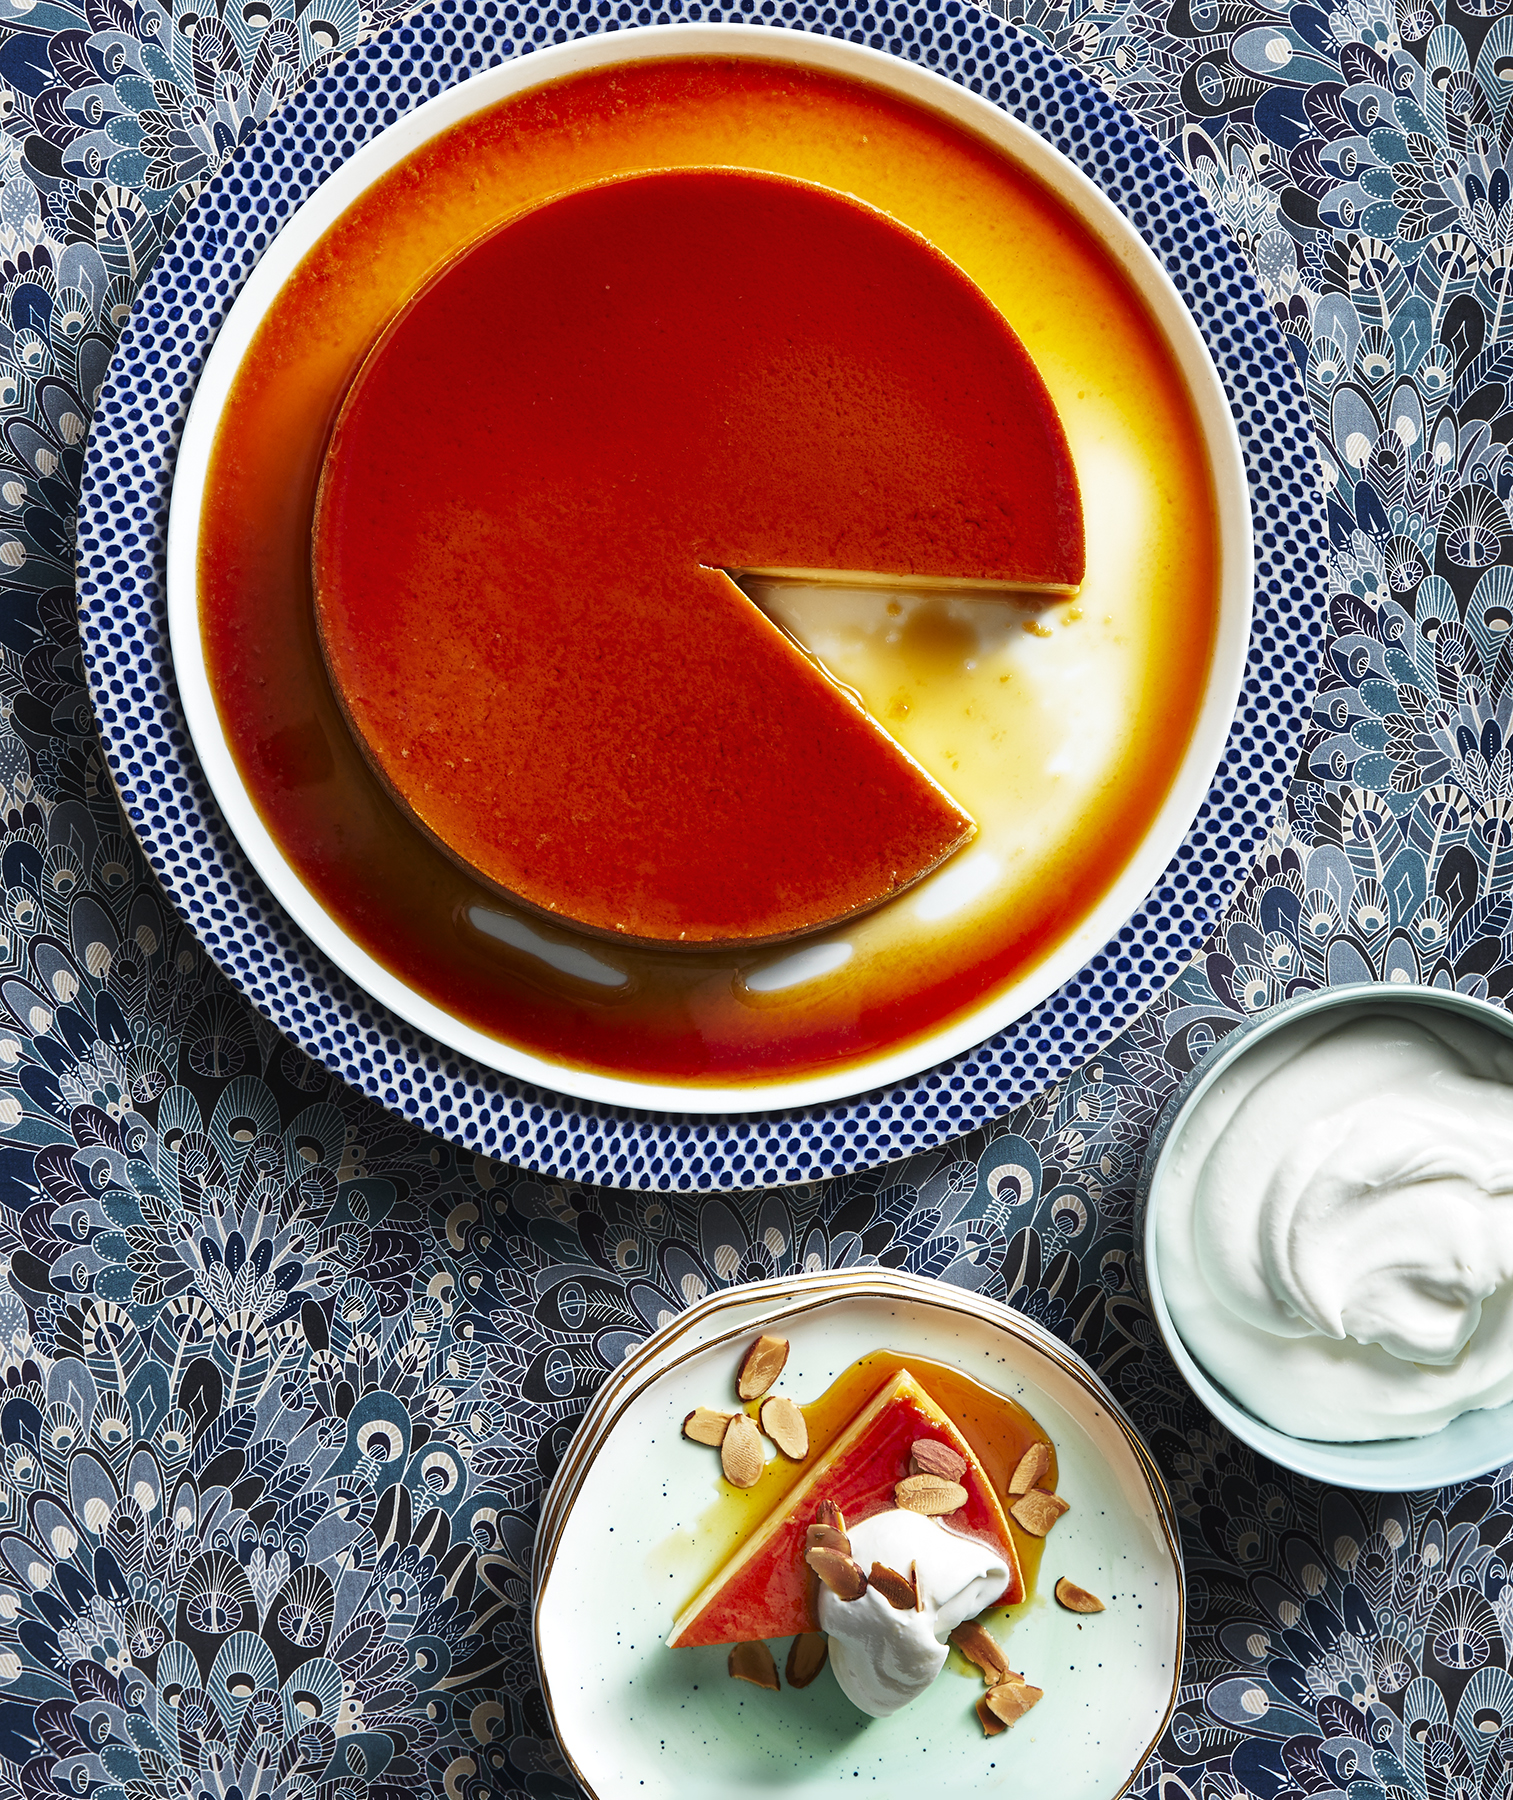 Honey-Almond Flan With Bourbon Whipped Cream